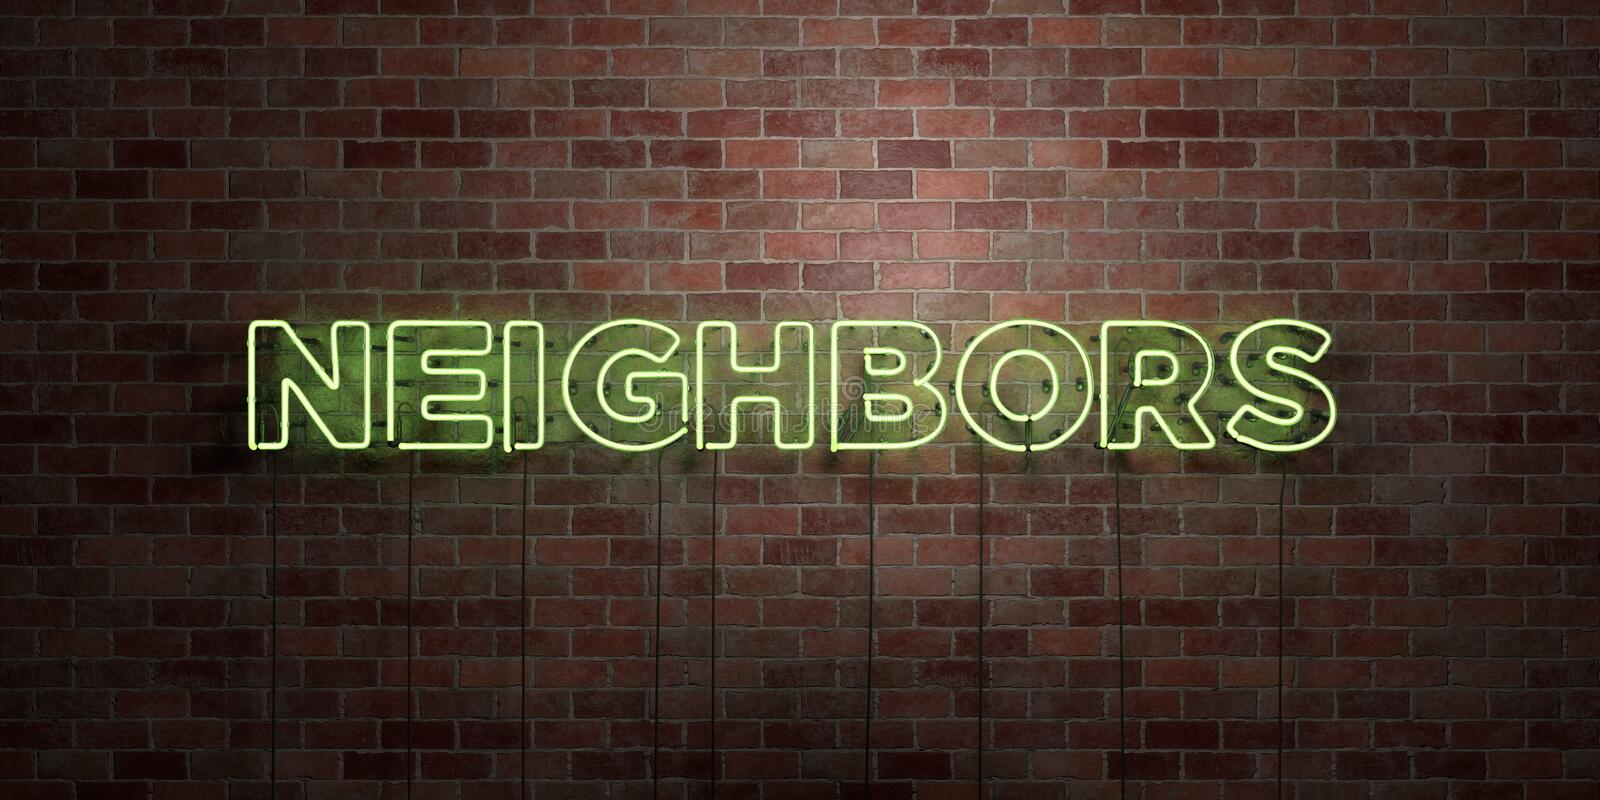 NEIGHBORS - fluorescent Neon tube Sign on brickwork - Front view - 3D rendered royalty free stock picture. Can be used for online banner ads and direct mailers royalty free illustration